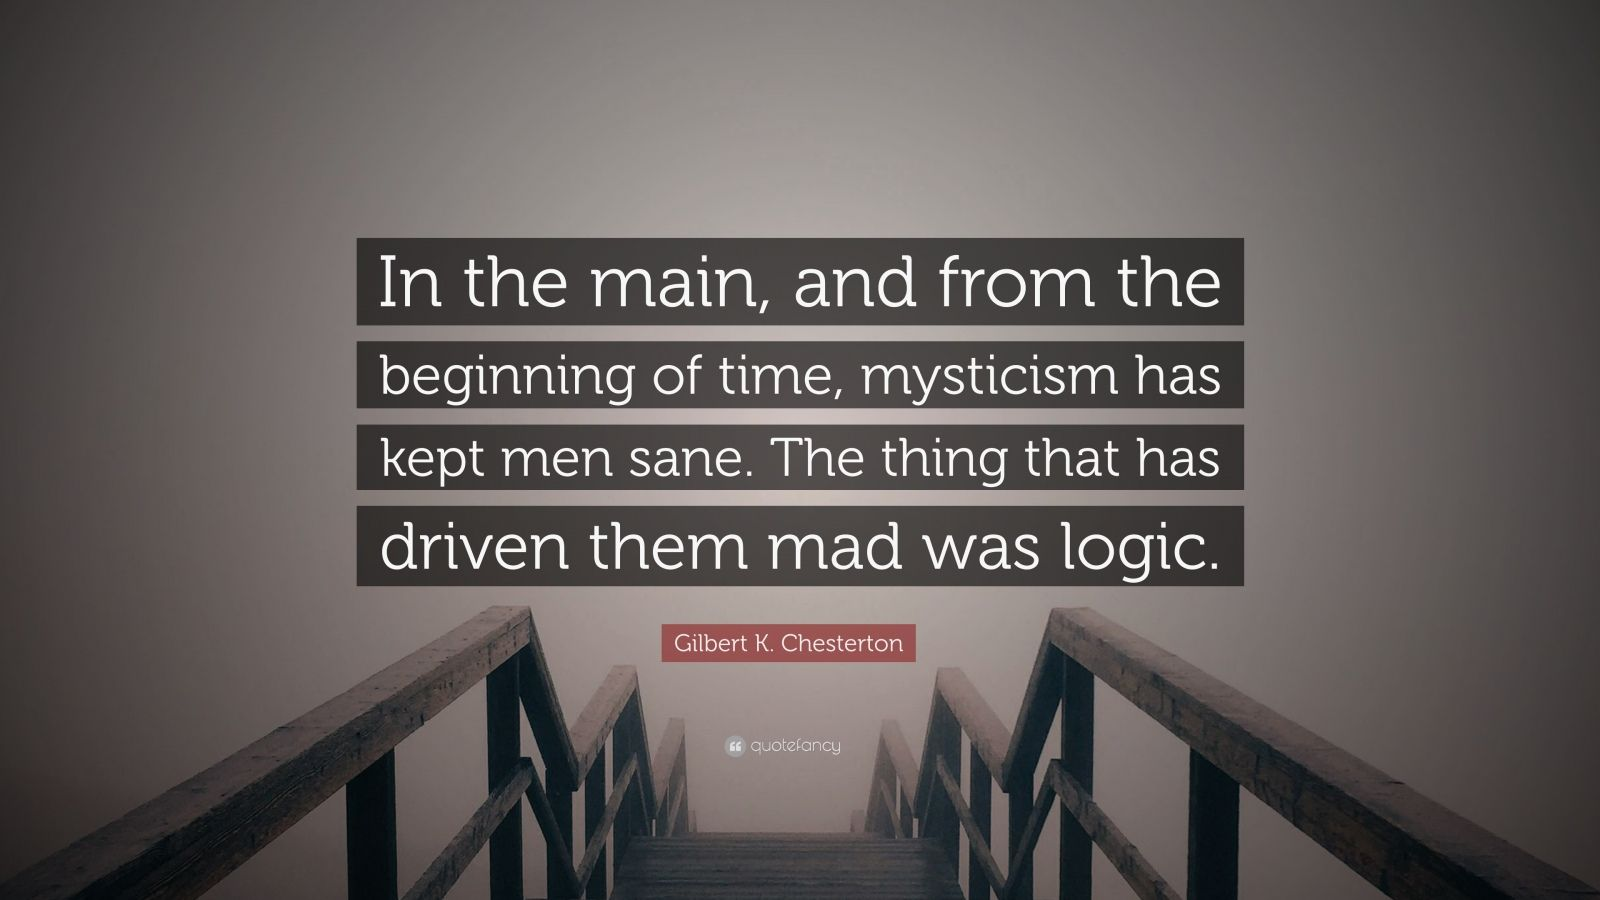 """Gilbert K. Chesterton Quote: """"In the main, and from the beginning of time, mysticism has kept men sane. The thing that has driven them mad was logic."""""""